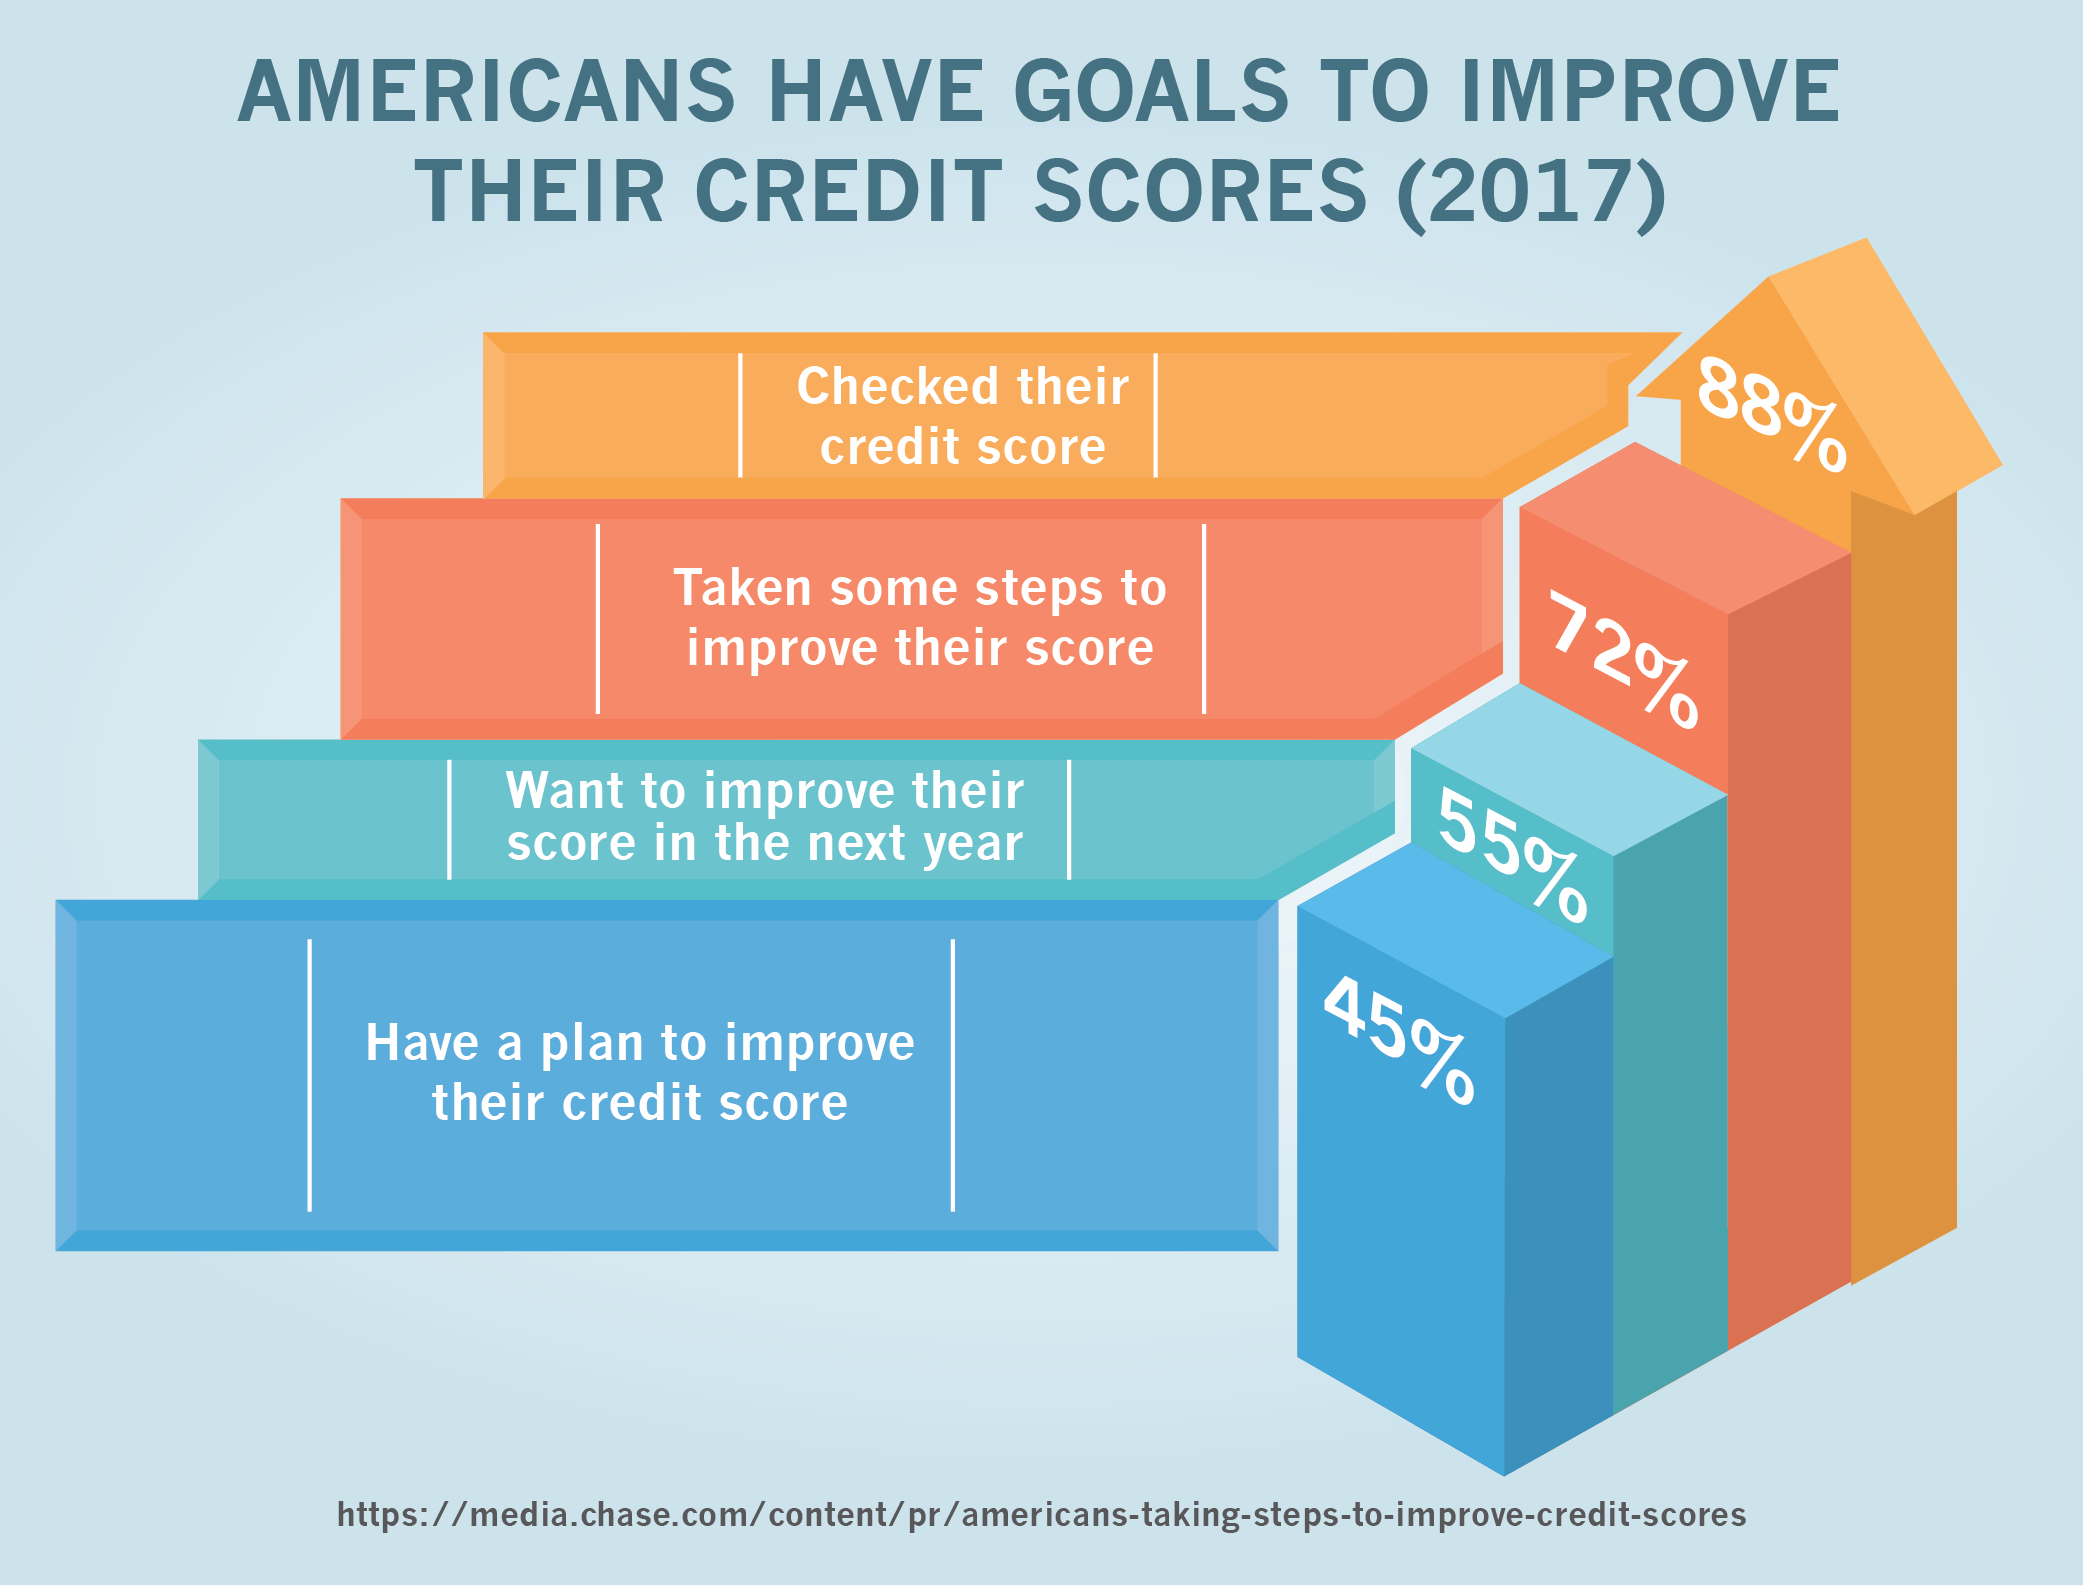 Americans Have Goals to Improve their Credit Scores (2017)